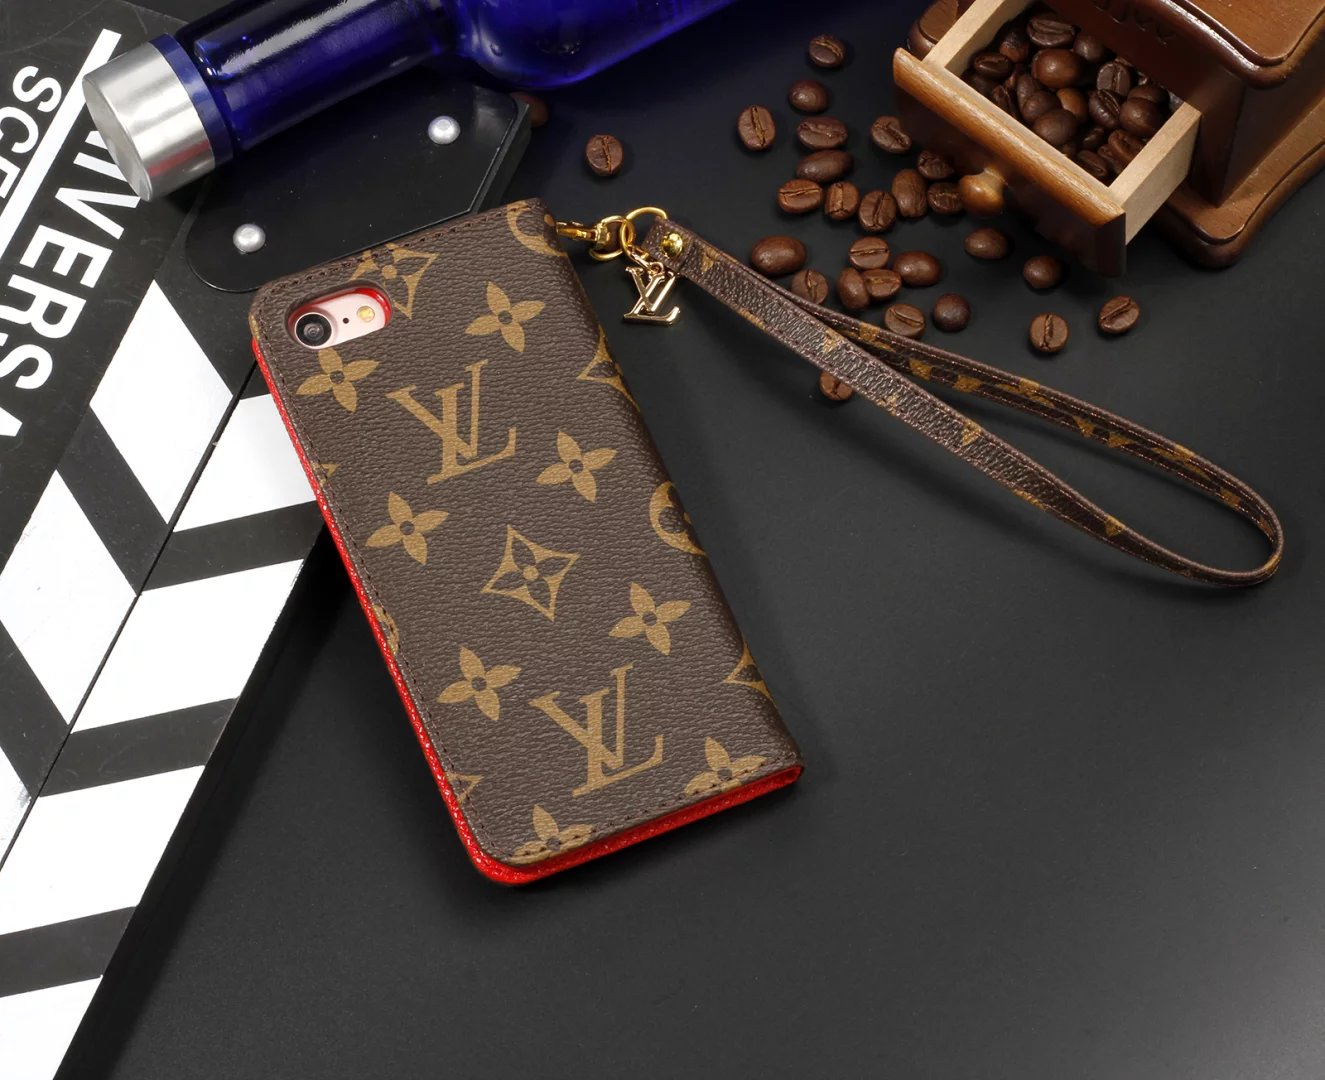 custom iphone 8 cases cheap case iphone 8 8 Louis Vuitton iphone 8 case best cases iphone 8 cases for an iphone 8 unique iphone 8 covers iphone case price create my own iphone case black phone case